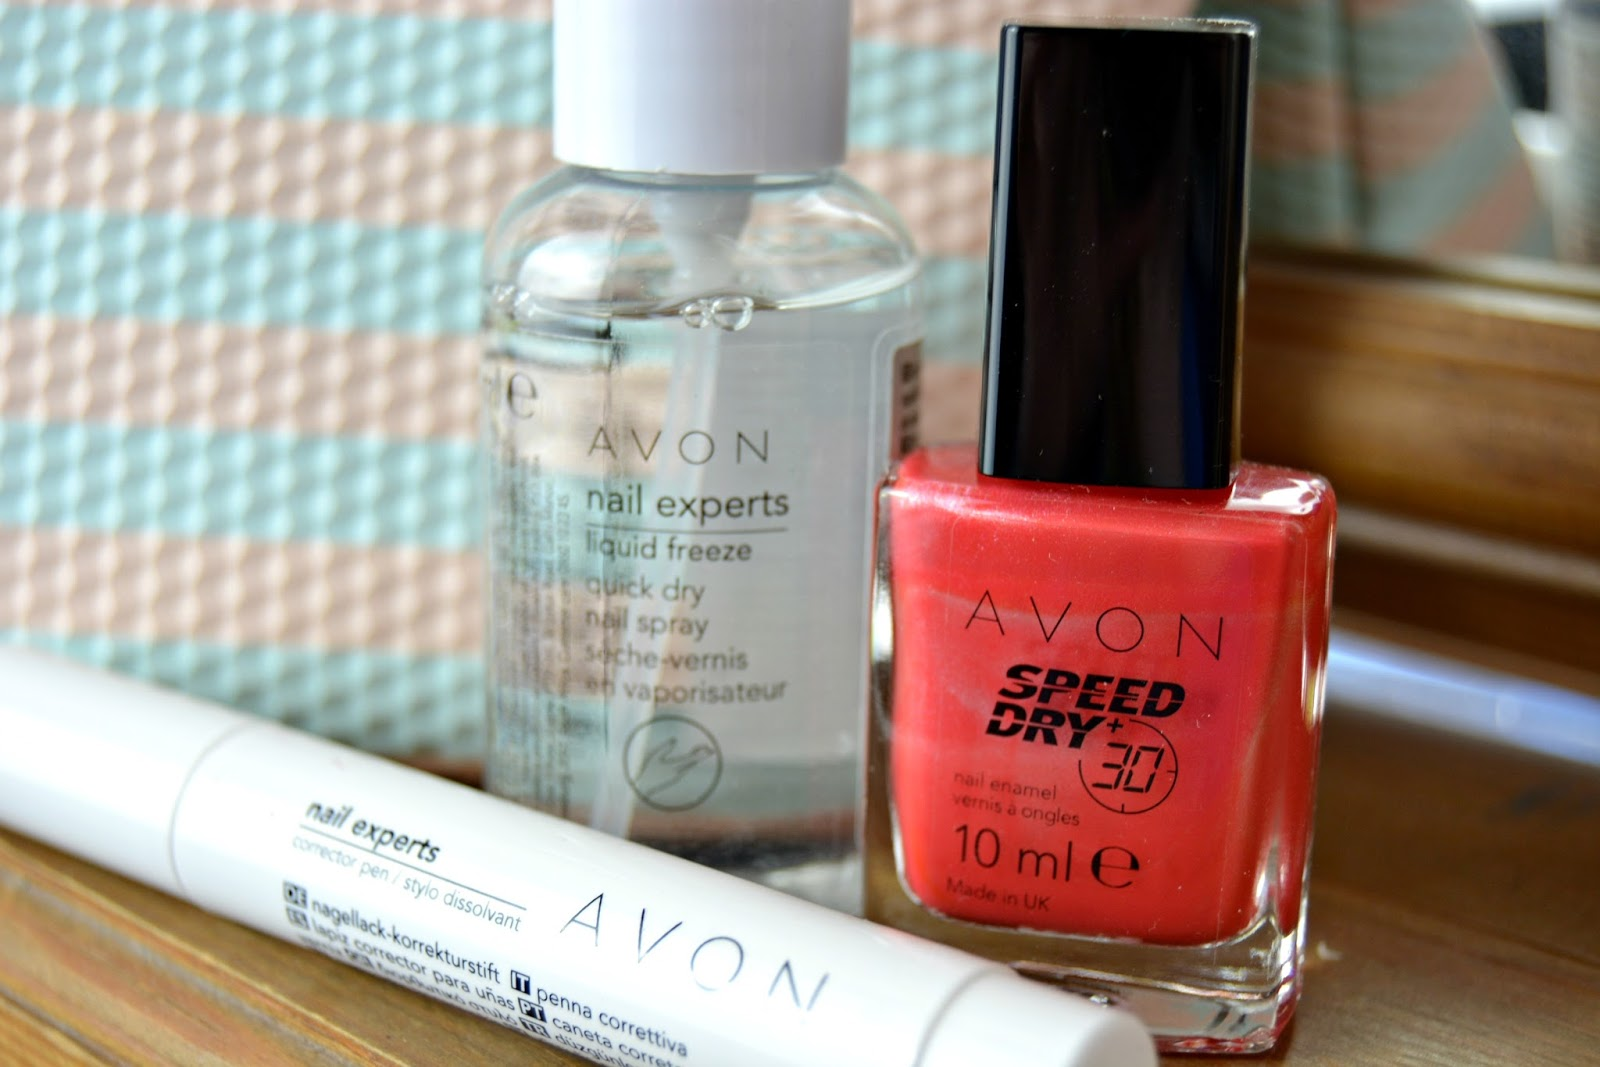 avon, cosmetics, nail, experts, beauty, make up, nail care, nail experts, nail enamel, nail varnish, paint